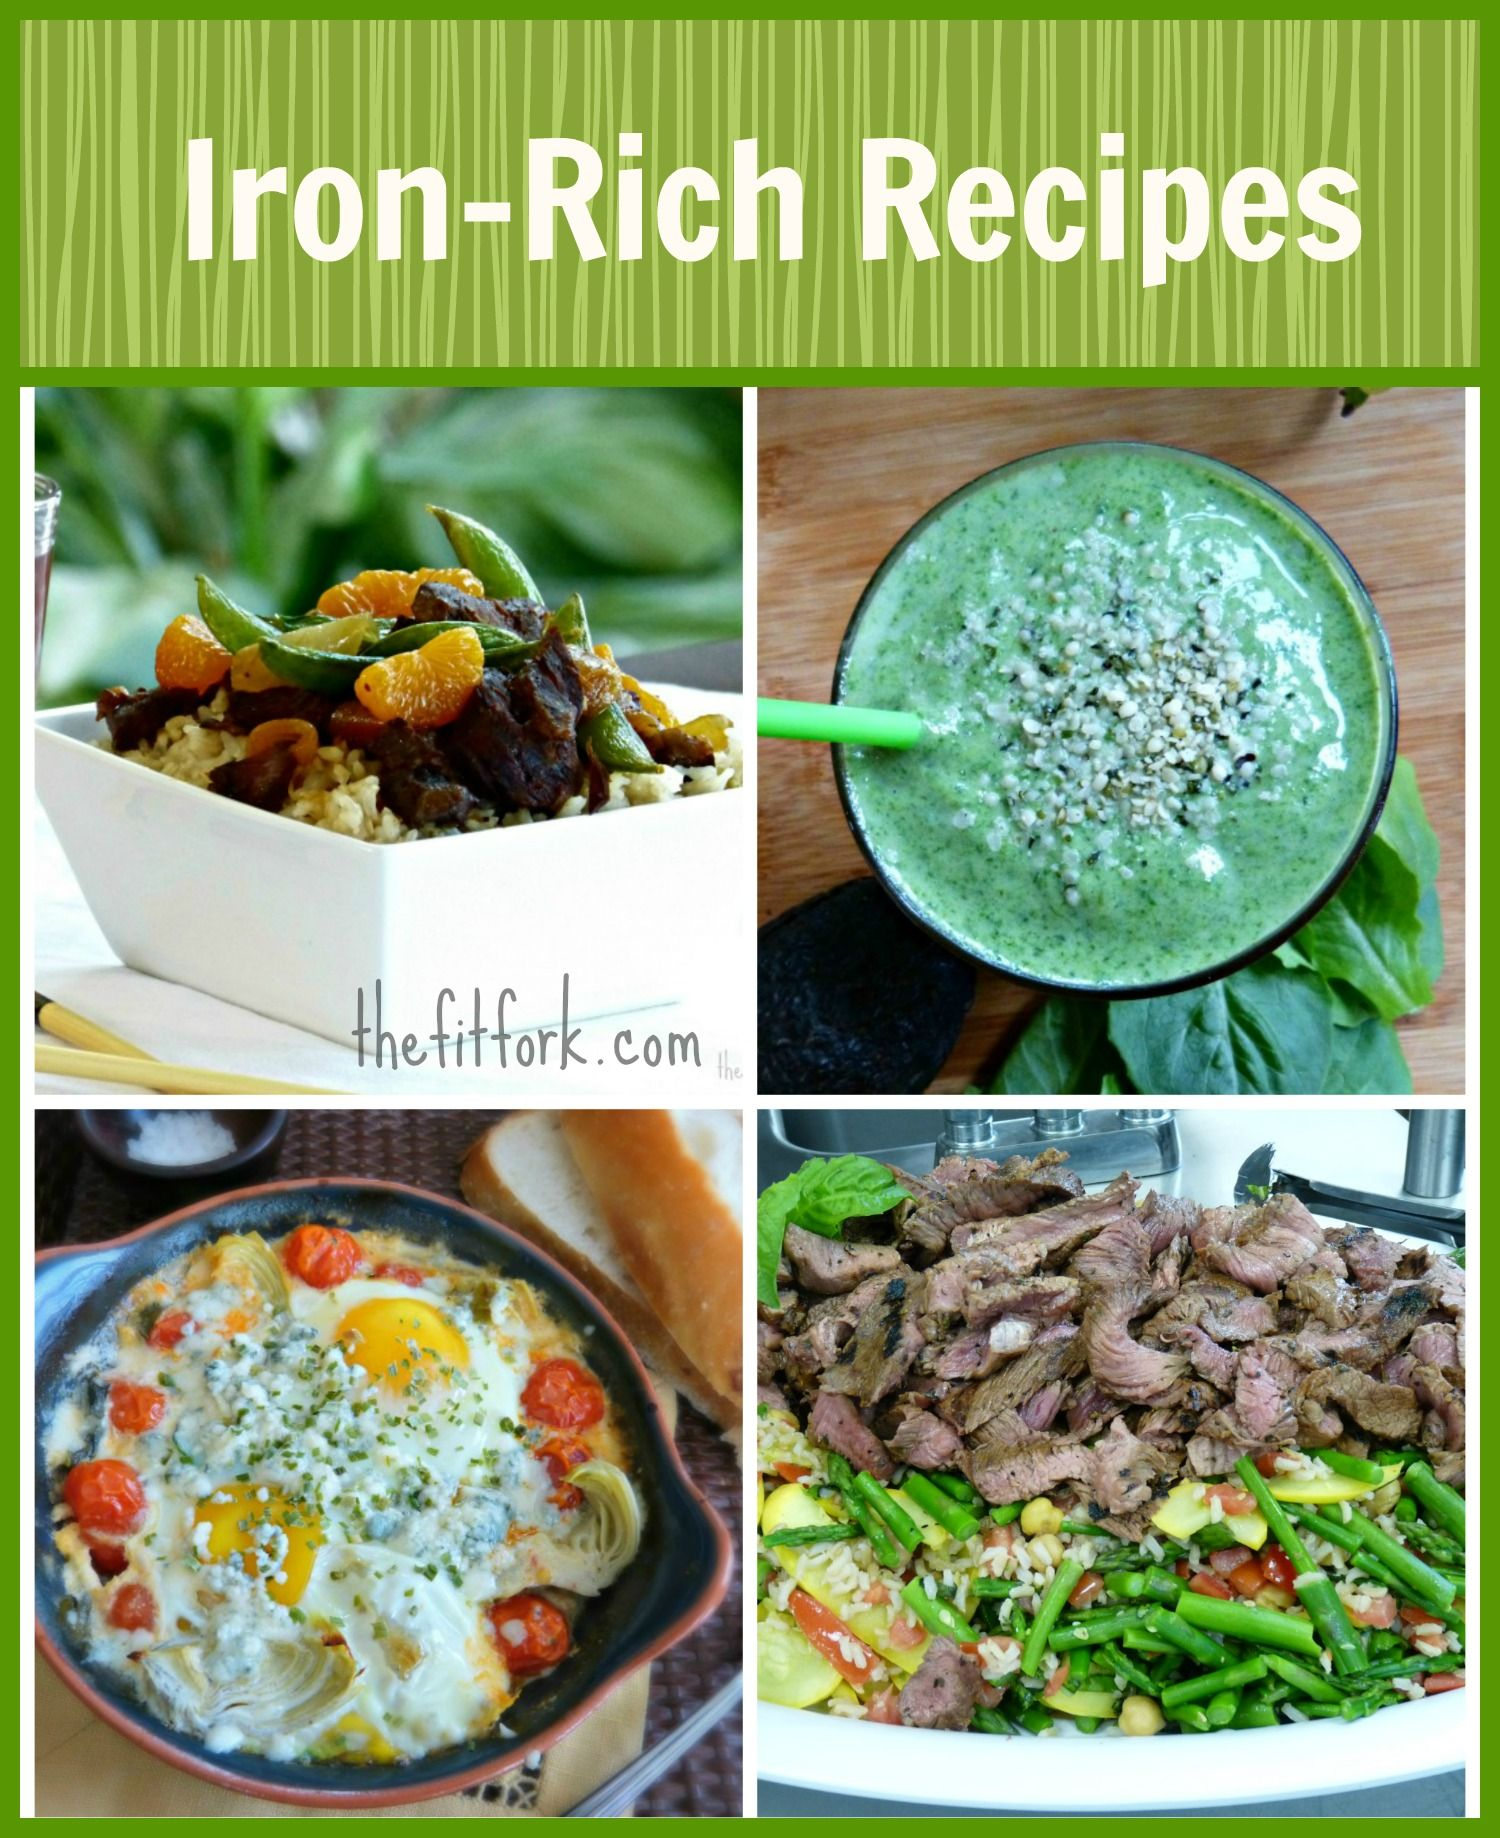 Anemia in runners healthy iron rich recipes iron rich recipes iron rich recipes for runners athletes pregnant women and everyone quick and healthy recipes from thefitfork forumfinder Gallery